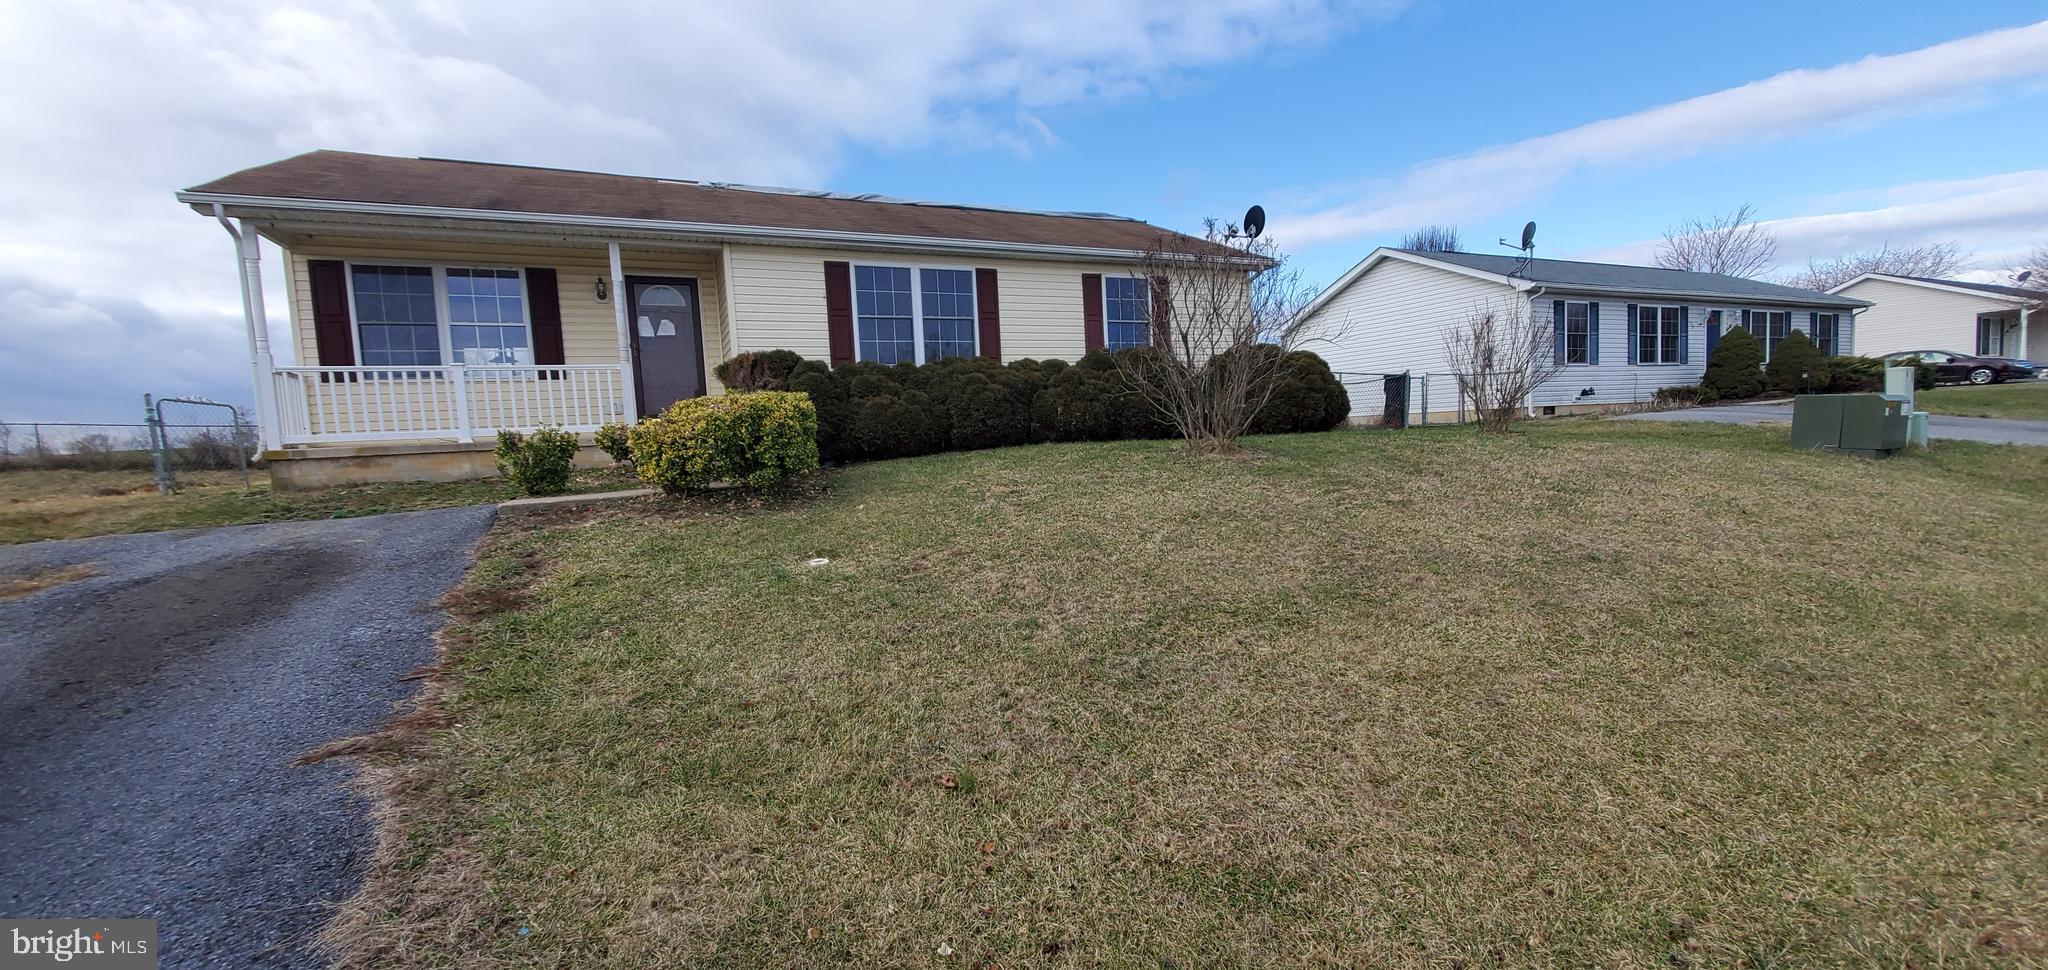 One Level Living!  This Rancher features 3 bedrooms with 2 full baths.  Covered front porch along wi